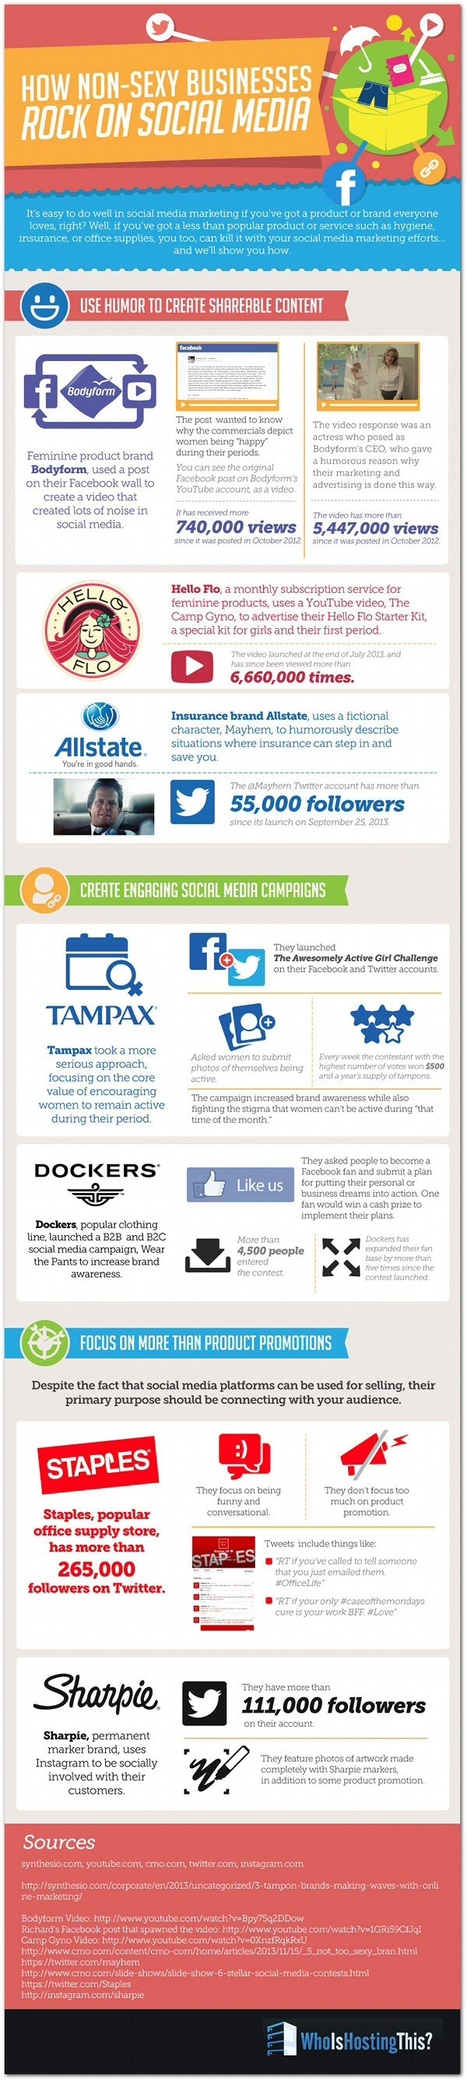 How Non-Sexy Businesses Rock On Social Media [INFOGRAPHIC] | MarketingHits | Scoop.it